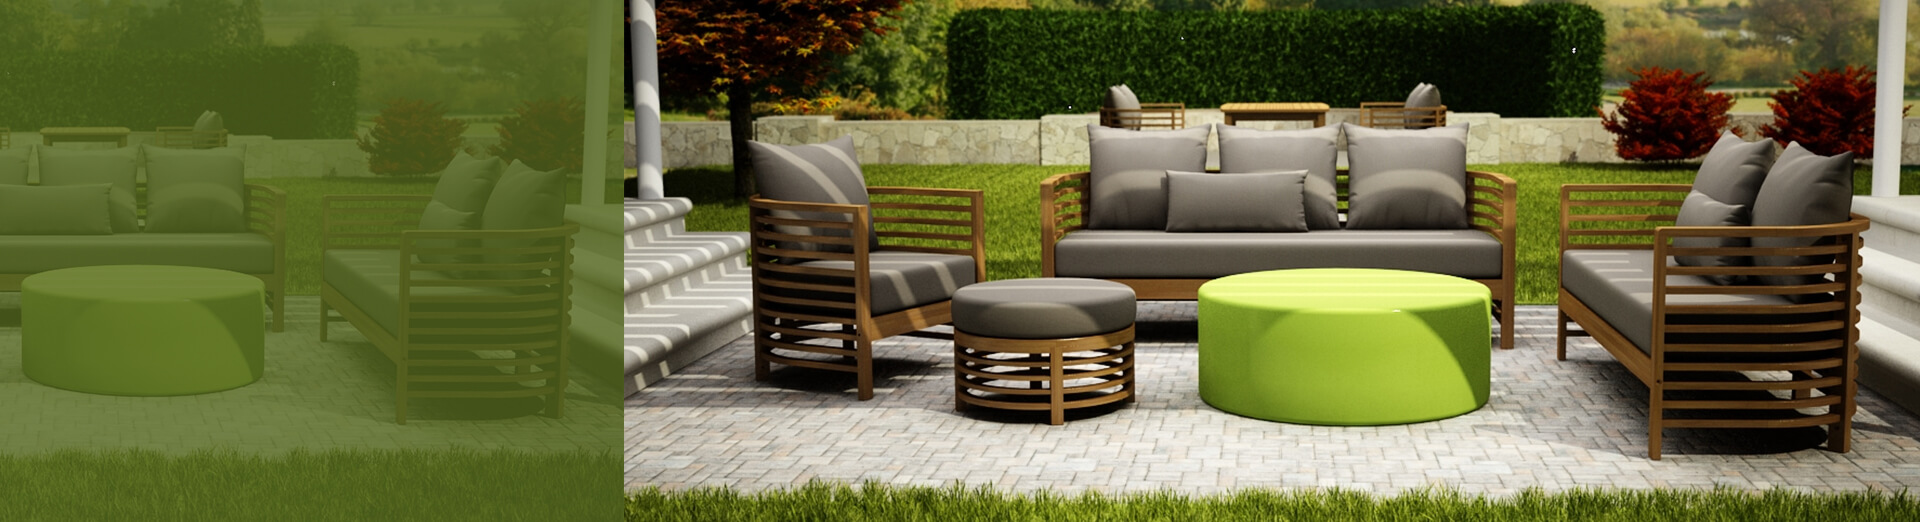 exterior-furniture-home-slider